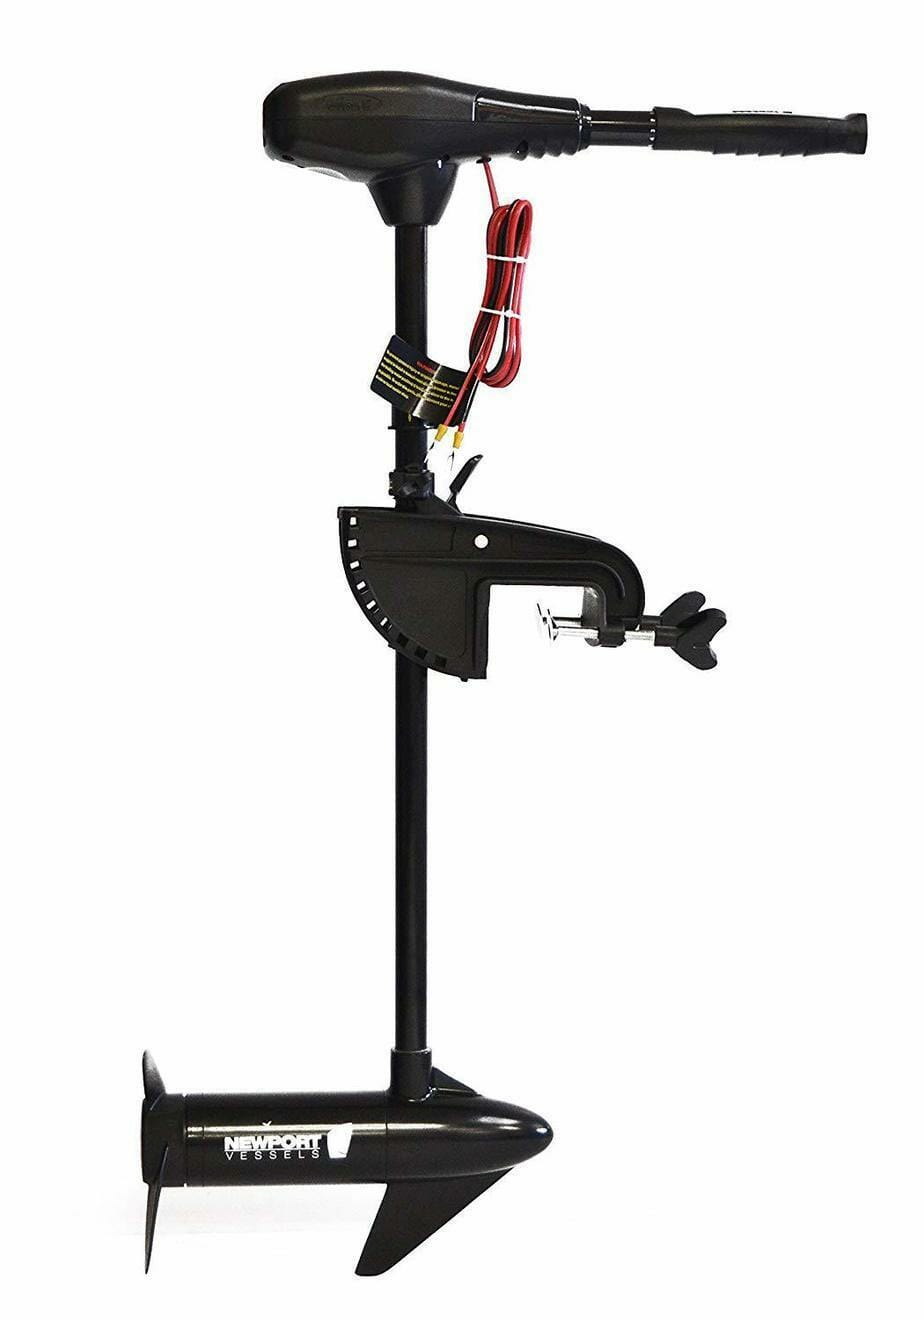 Newport Vessels NV-Series 46lb Thrust Trolling Motor